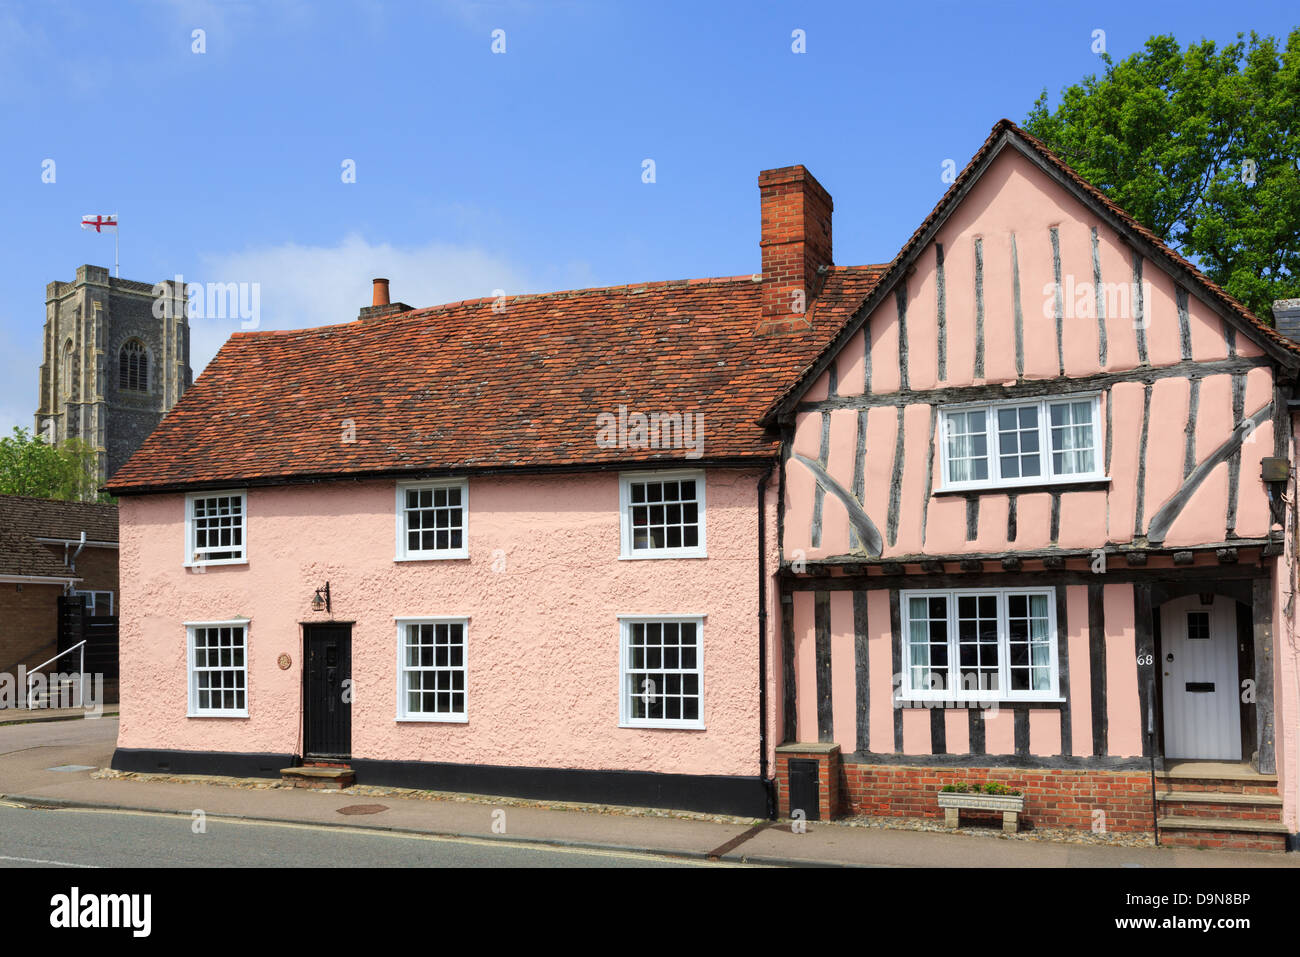 Pink timbered cottages and parish church of St Peter and St Paul's tall tower. Lavenham, Suffolk, England, UK, - Stock Image